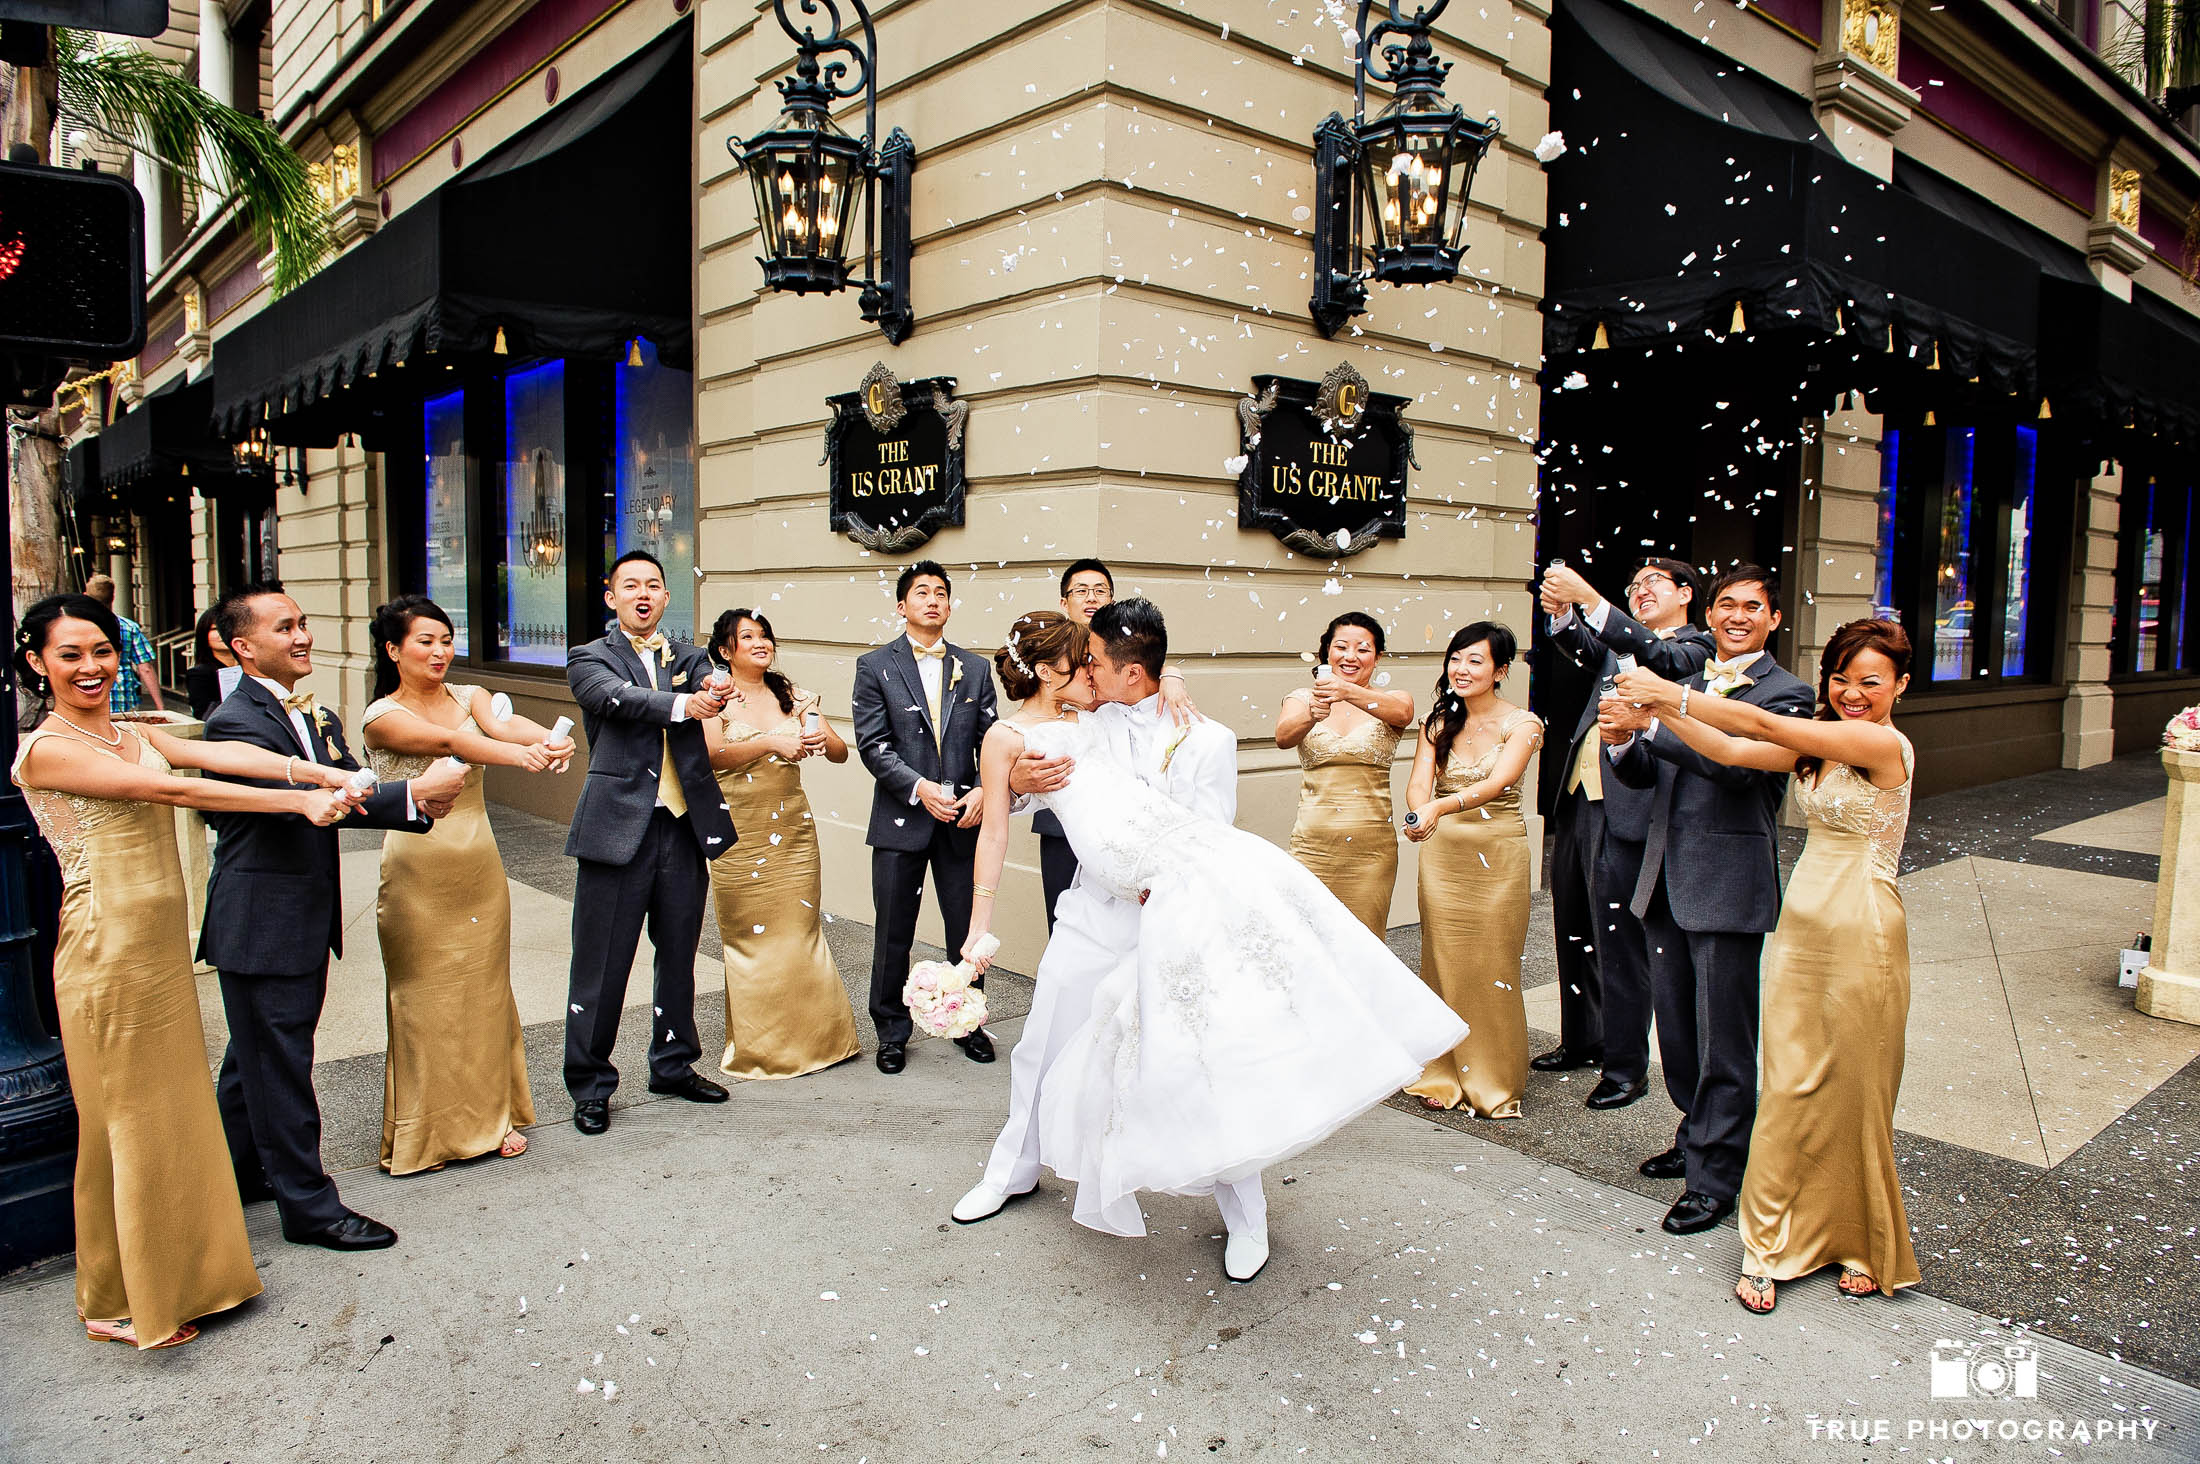 Bridal party throwing confetti while bride and groom kiss